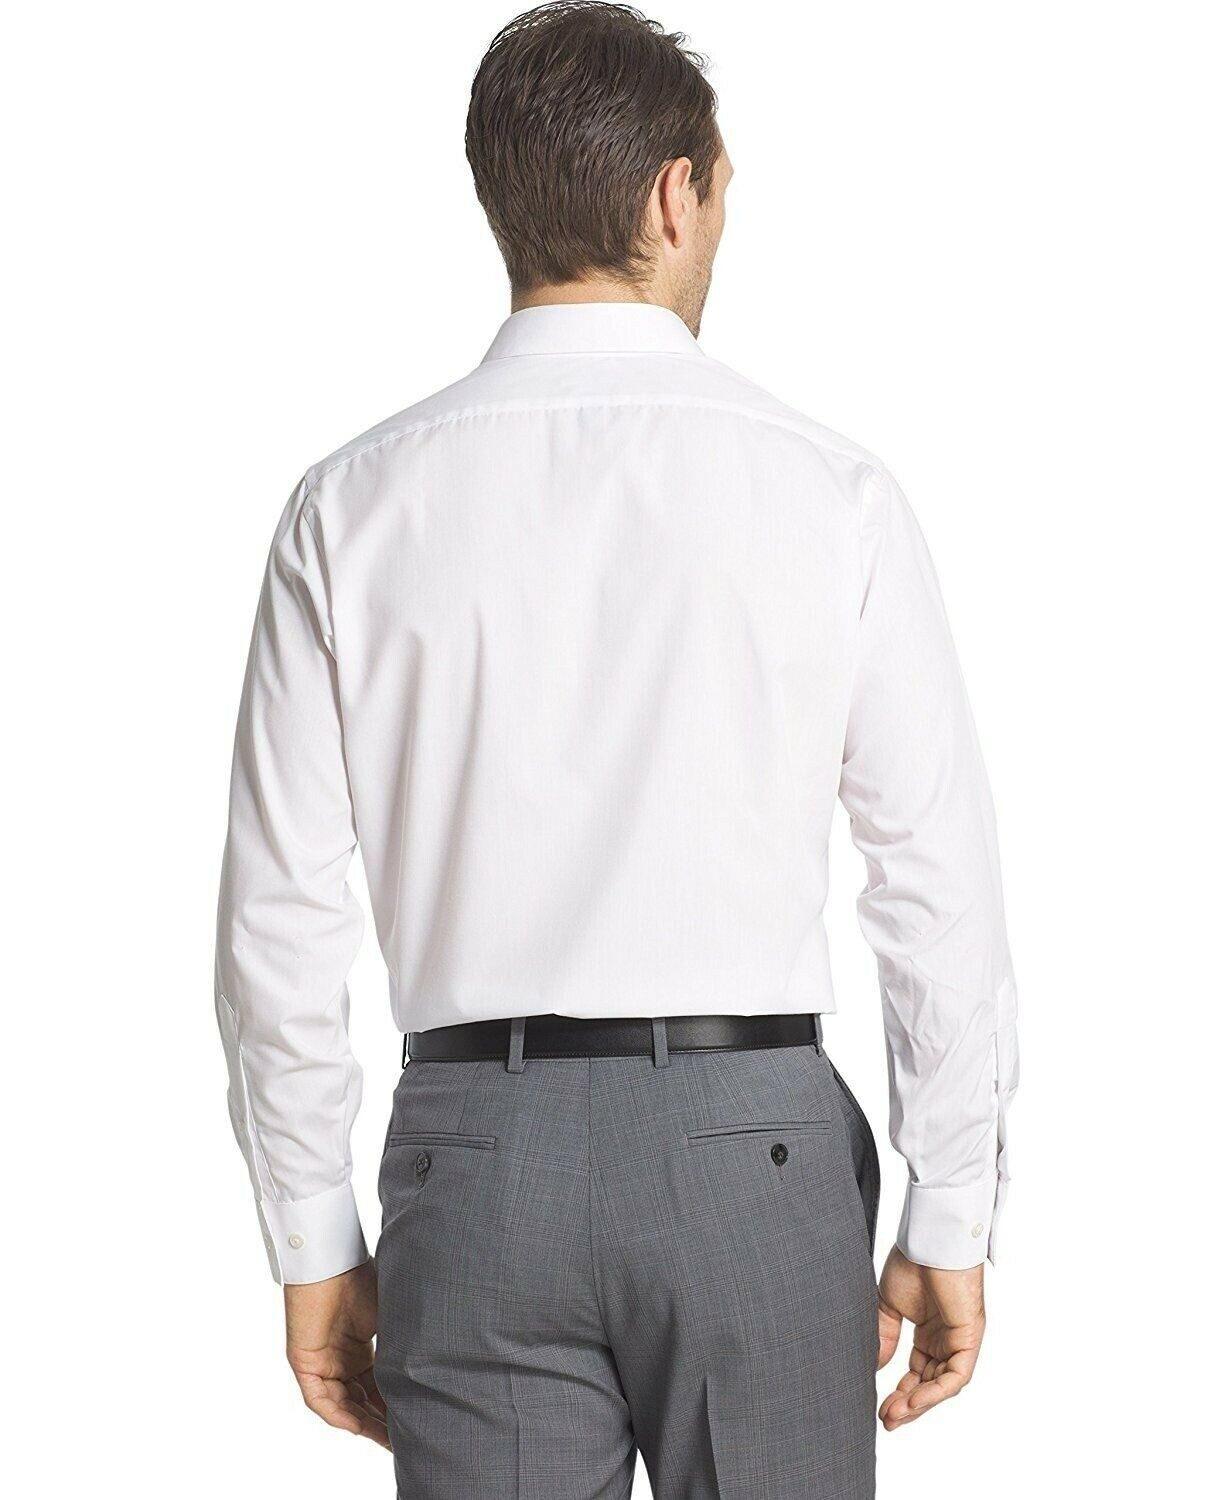 BERLIONI-ITALY-MEN-039-S-PRIME-FRENCH-CONVERTIBLE-CUFF-SOLID-DRESS-SHIRT-WHITE thumbnail 12